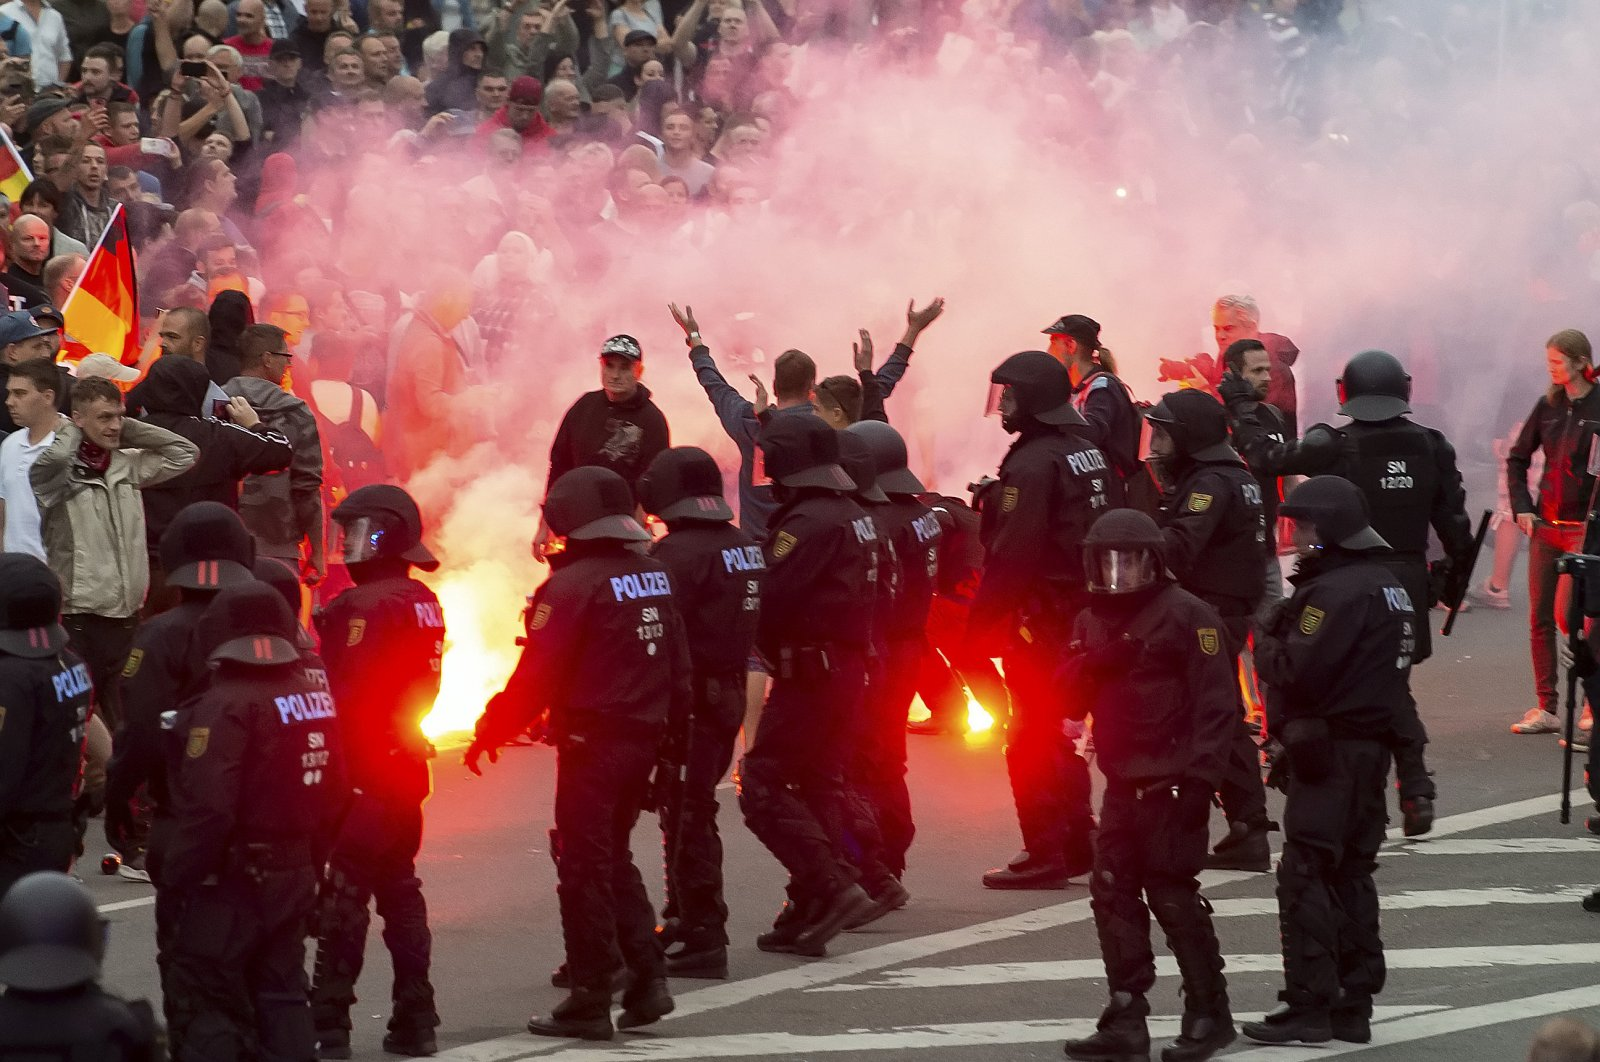 Protesters light fireworks during a far-right demonstrations, Chemnitz, Aug. 27, 2018. (AP Photo)